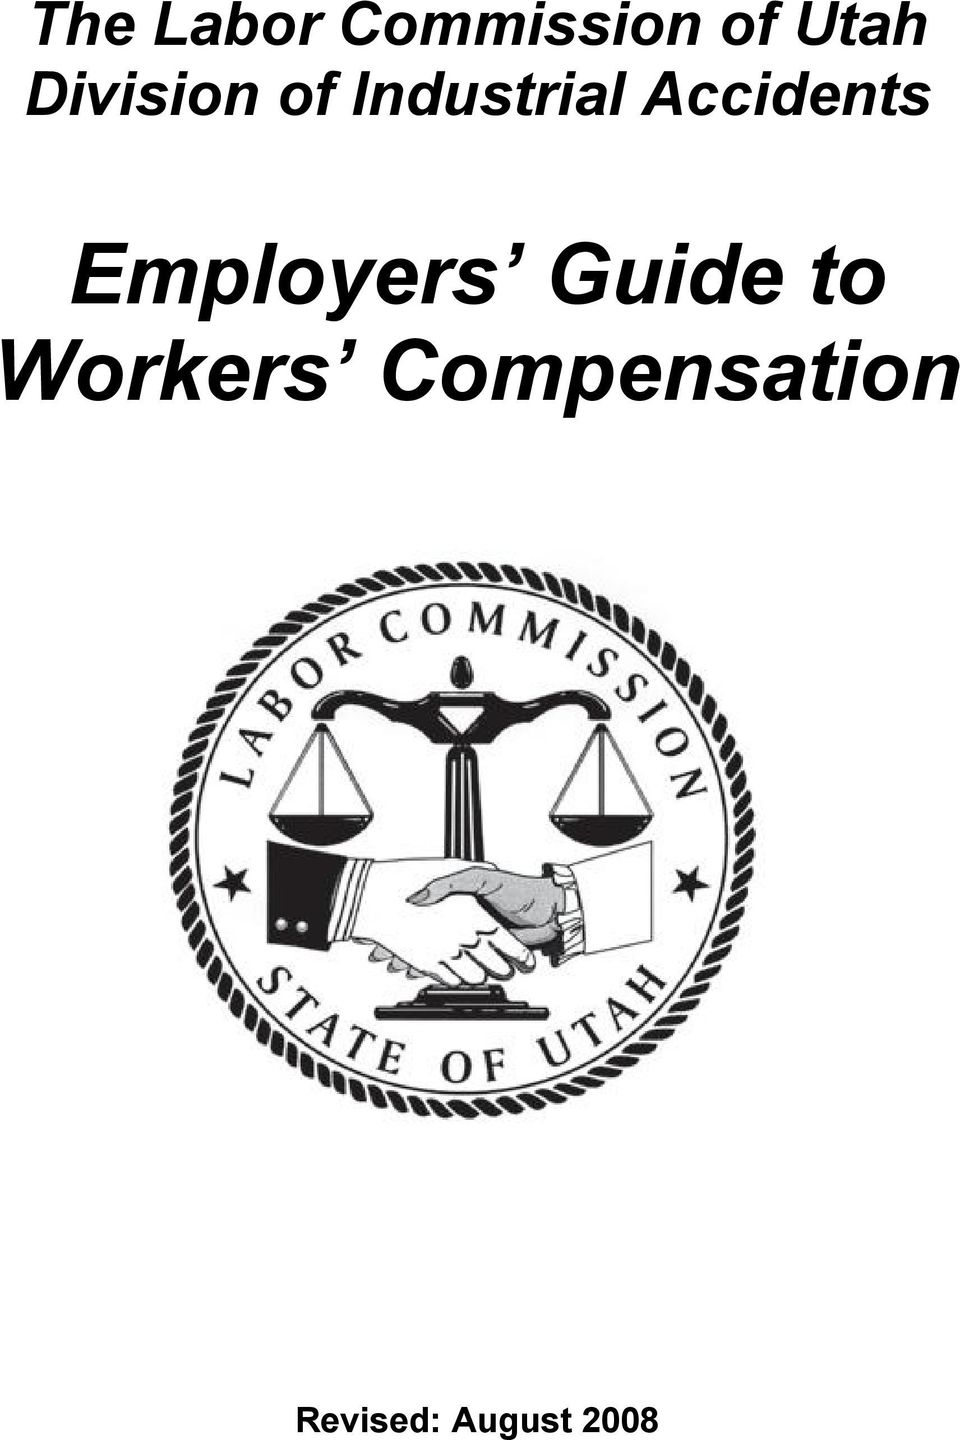 Accidents Employers Guide to